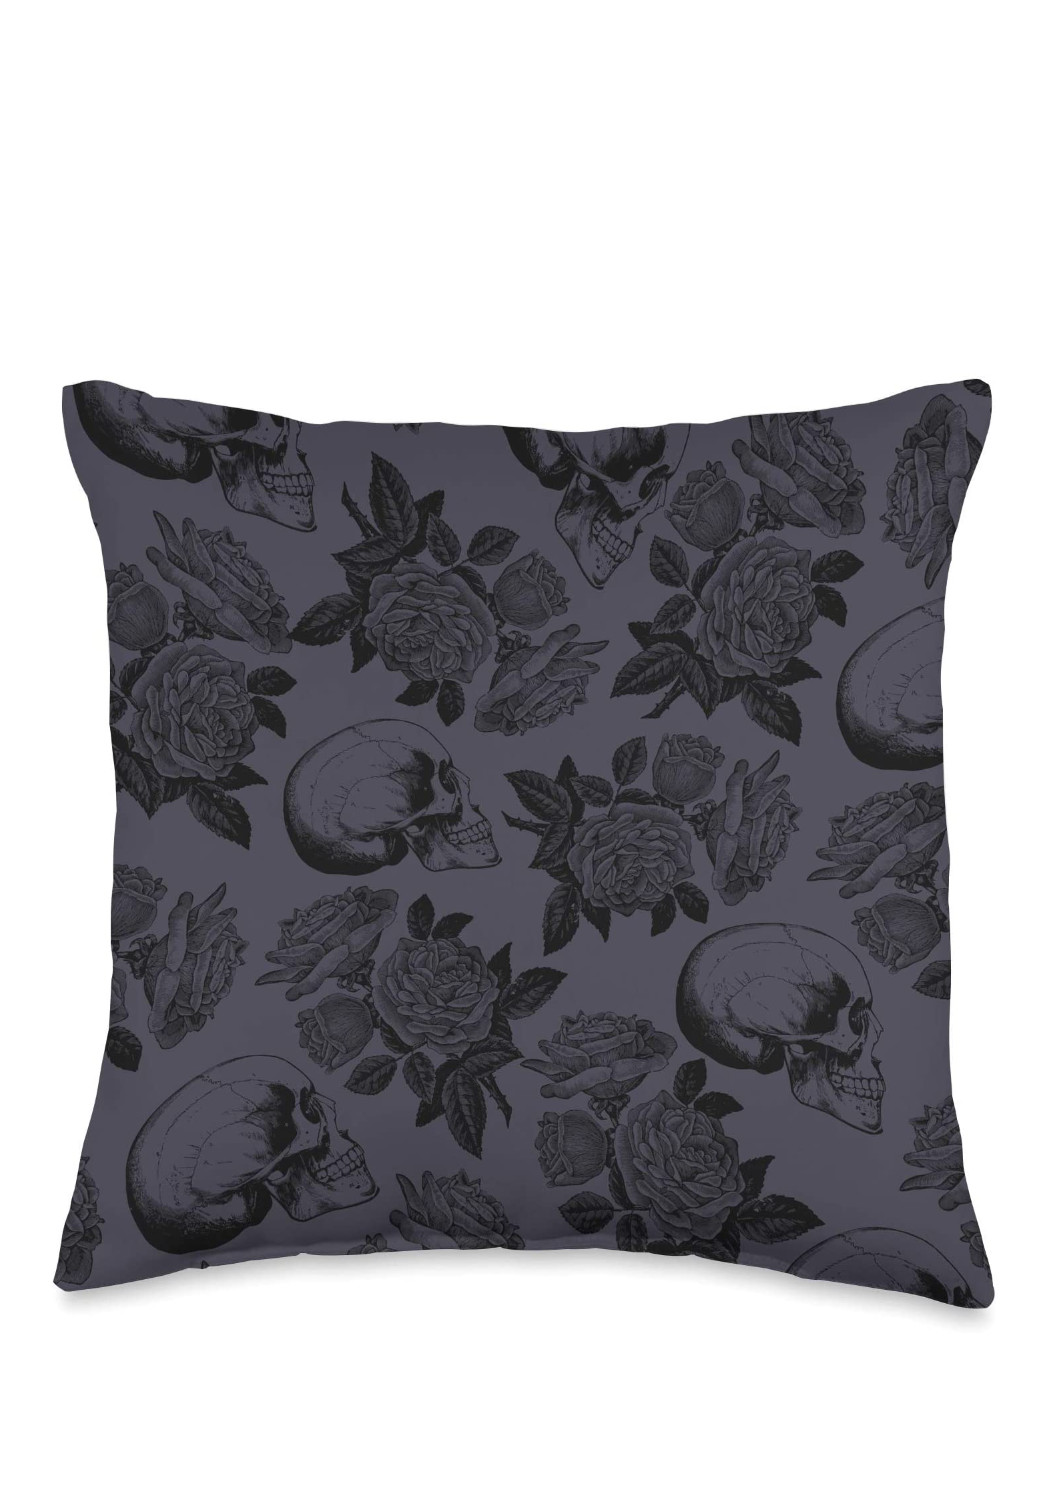 Skulls & Roses Throw Pillow